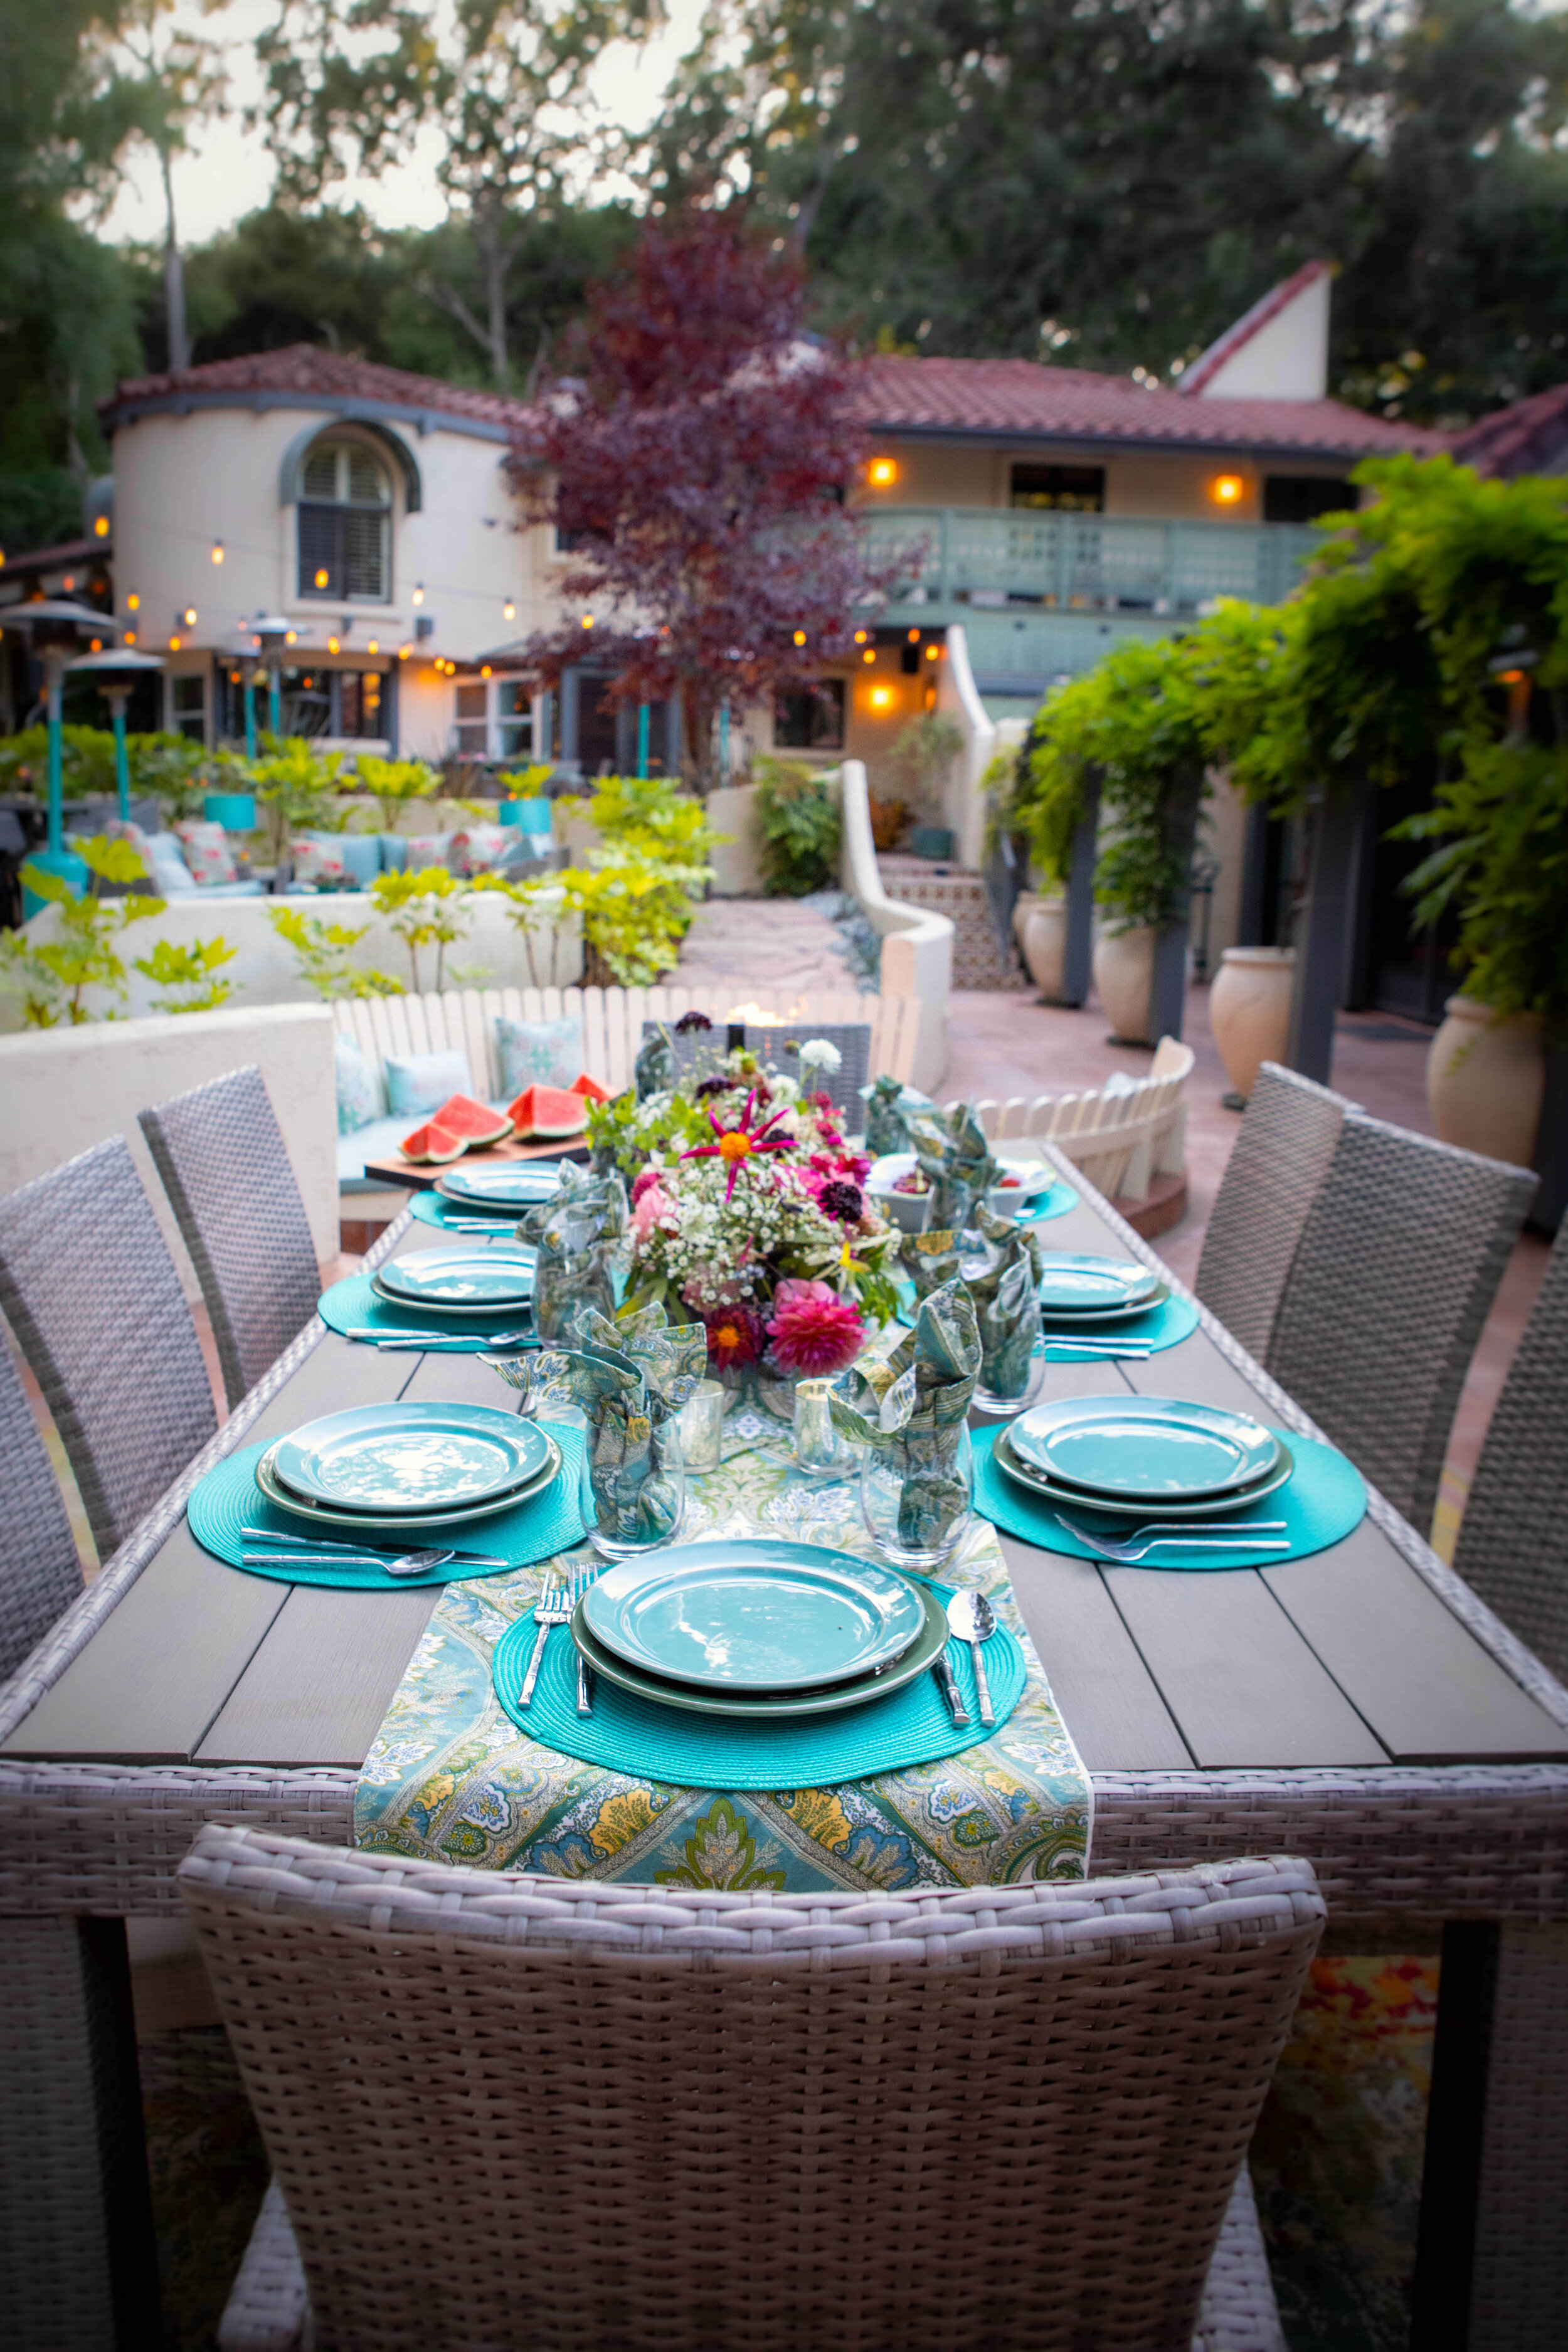 Casita Table Looking at House.jpg